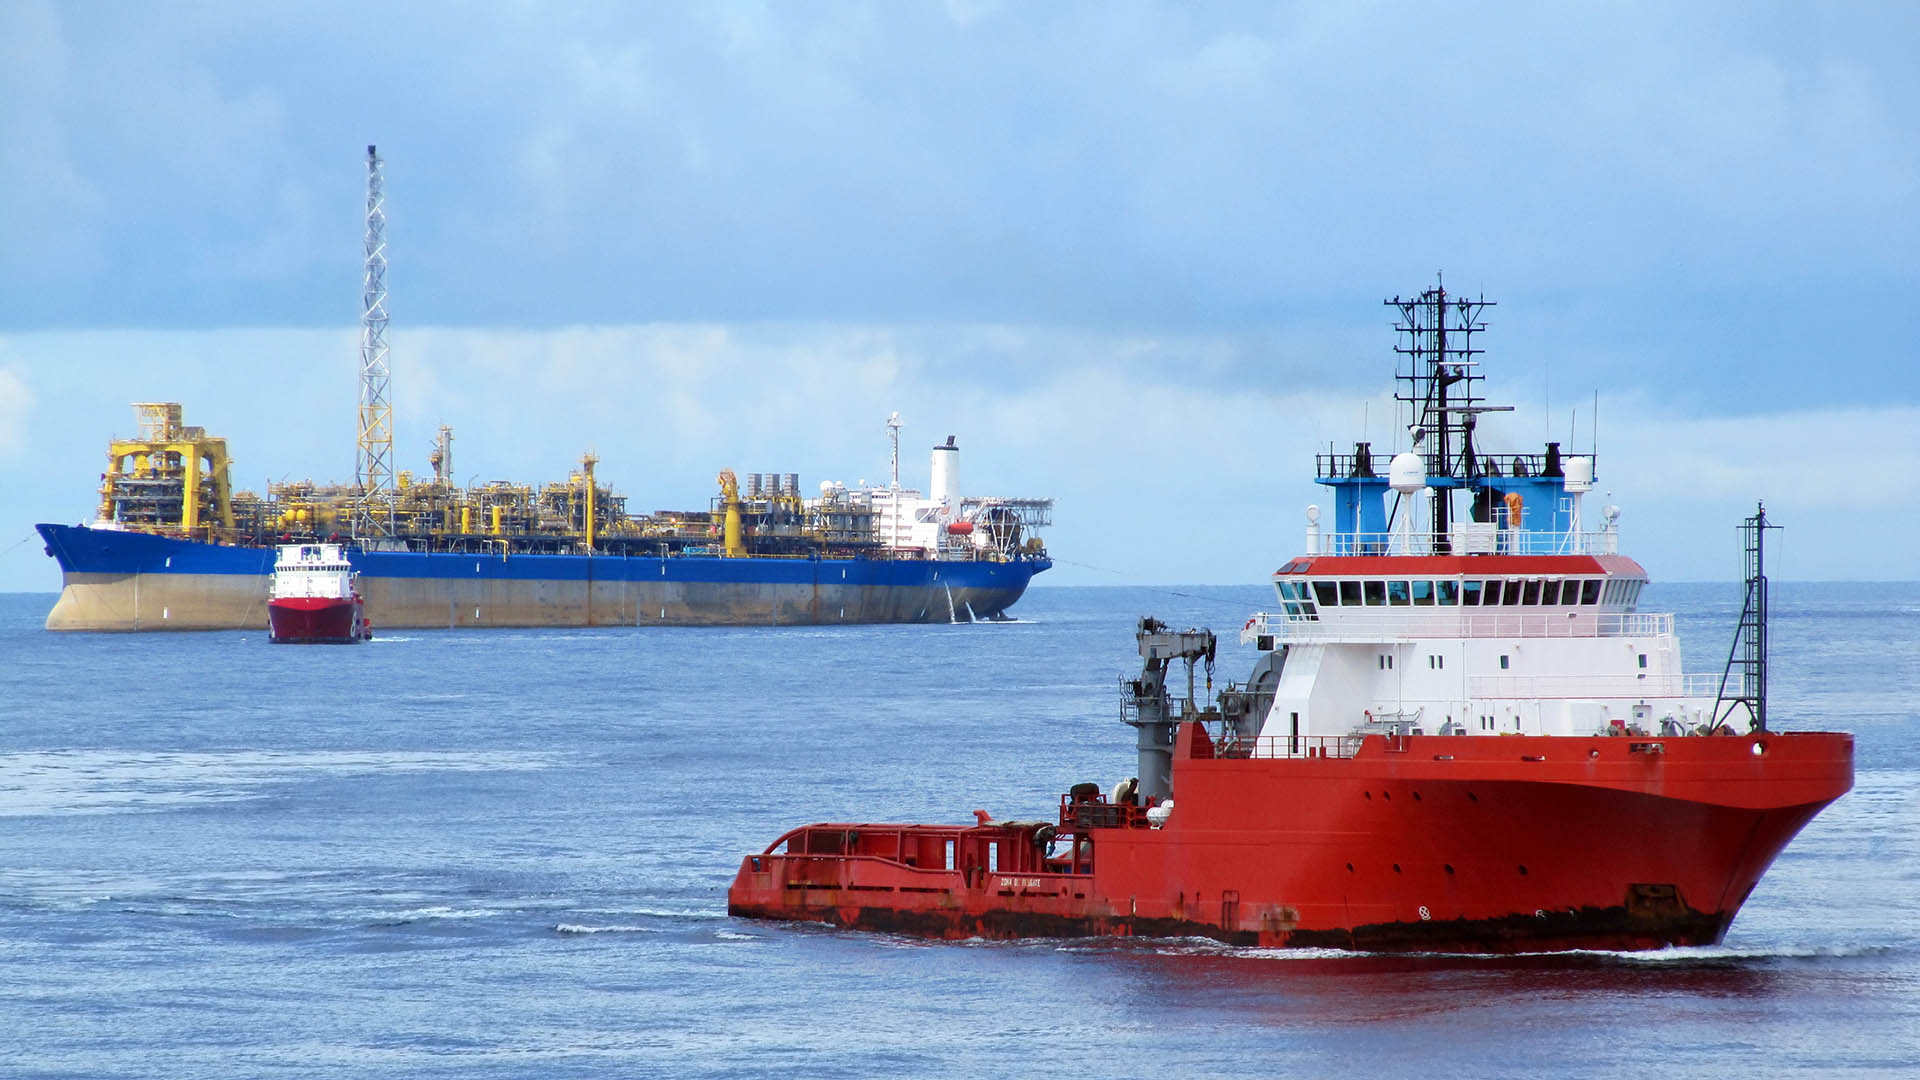 Neptune Marine Services (ASX:NMS) sells key operating subsidiaries to MMA Offshore (ASX:MRM)